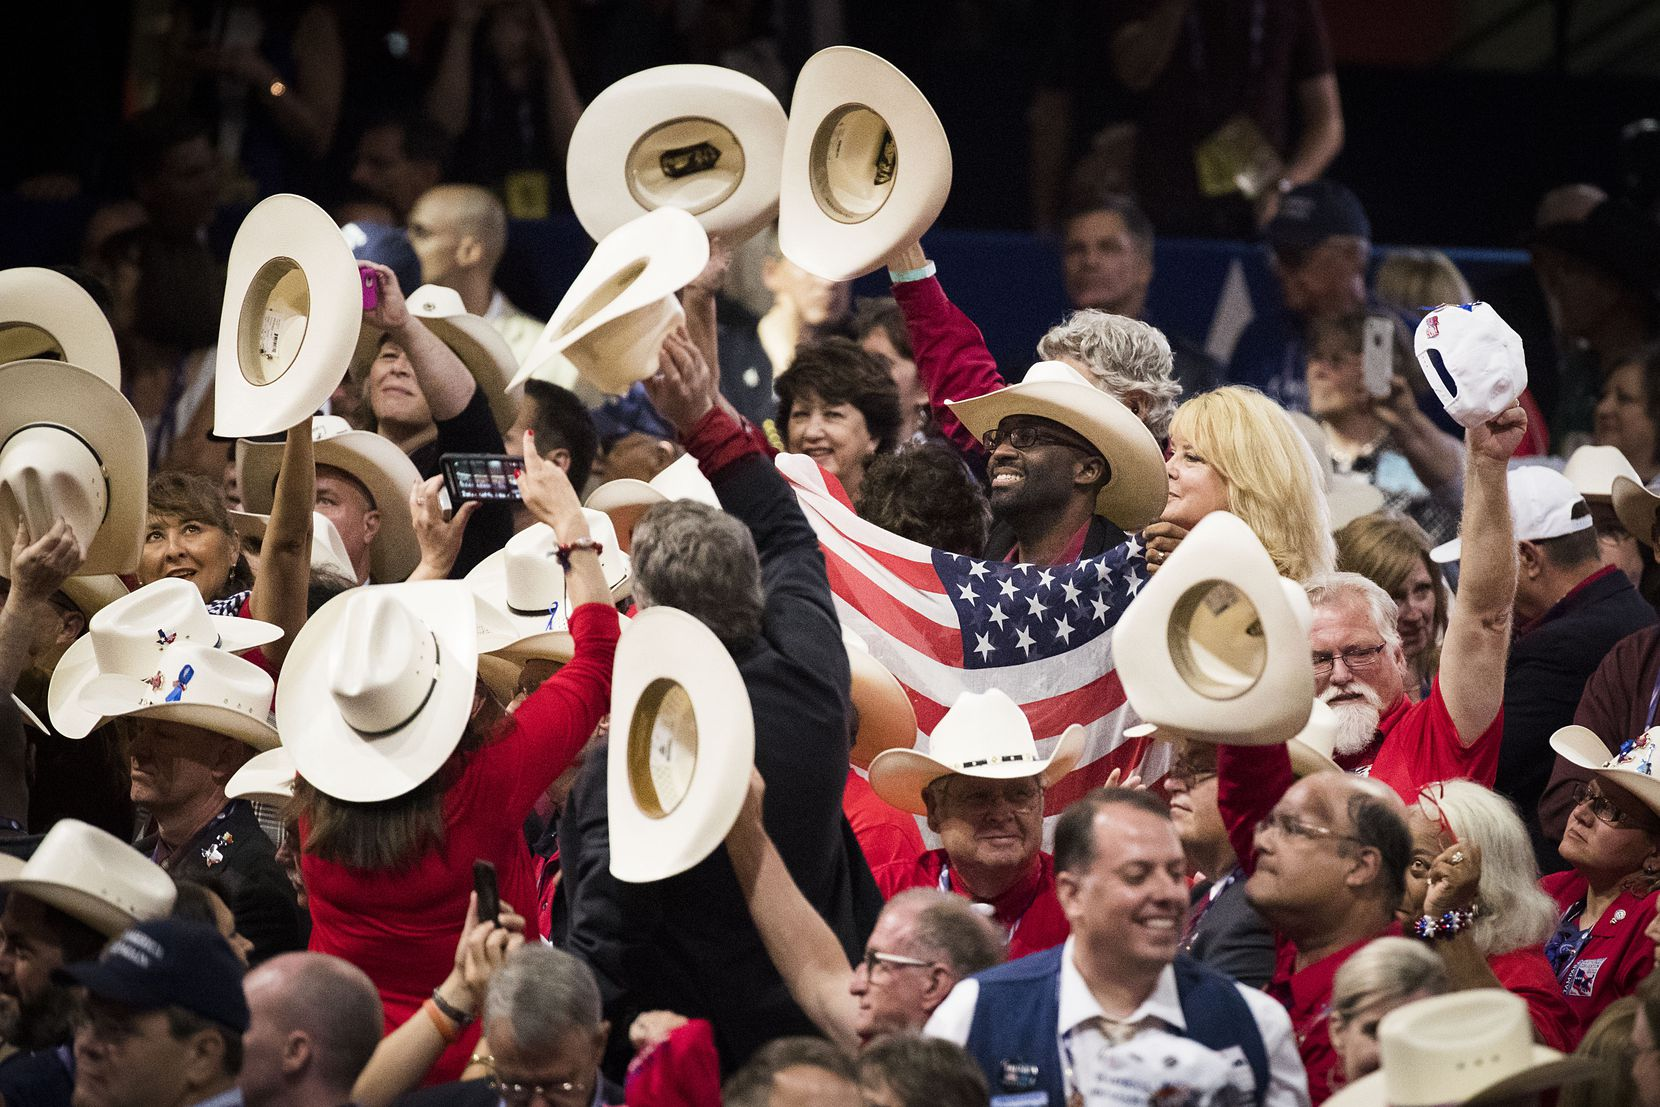 Texas delegates celebrate at the 2016 Republican National Convention in Cleveland. The 2020 convention will lack the energy of a packed arena.